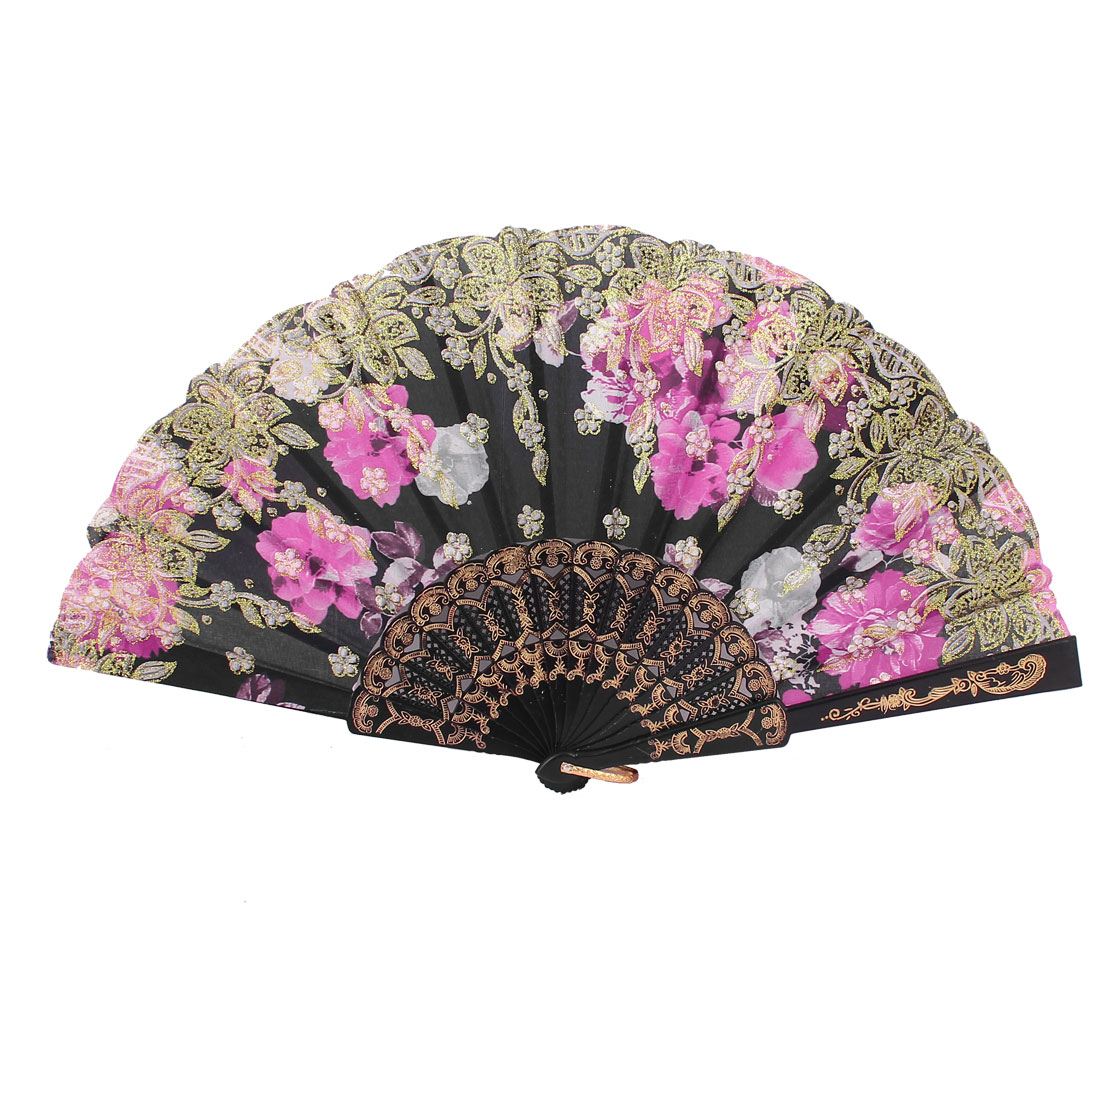 Black Frame Flowers Pattern Dancing Wedding Party Women Folding Hand Fan